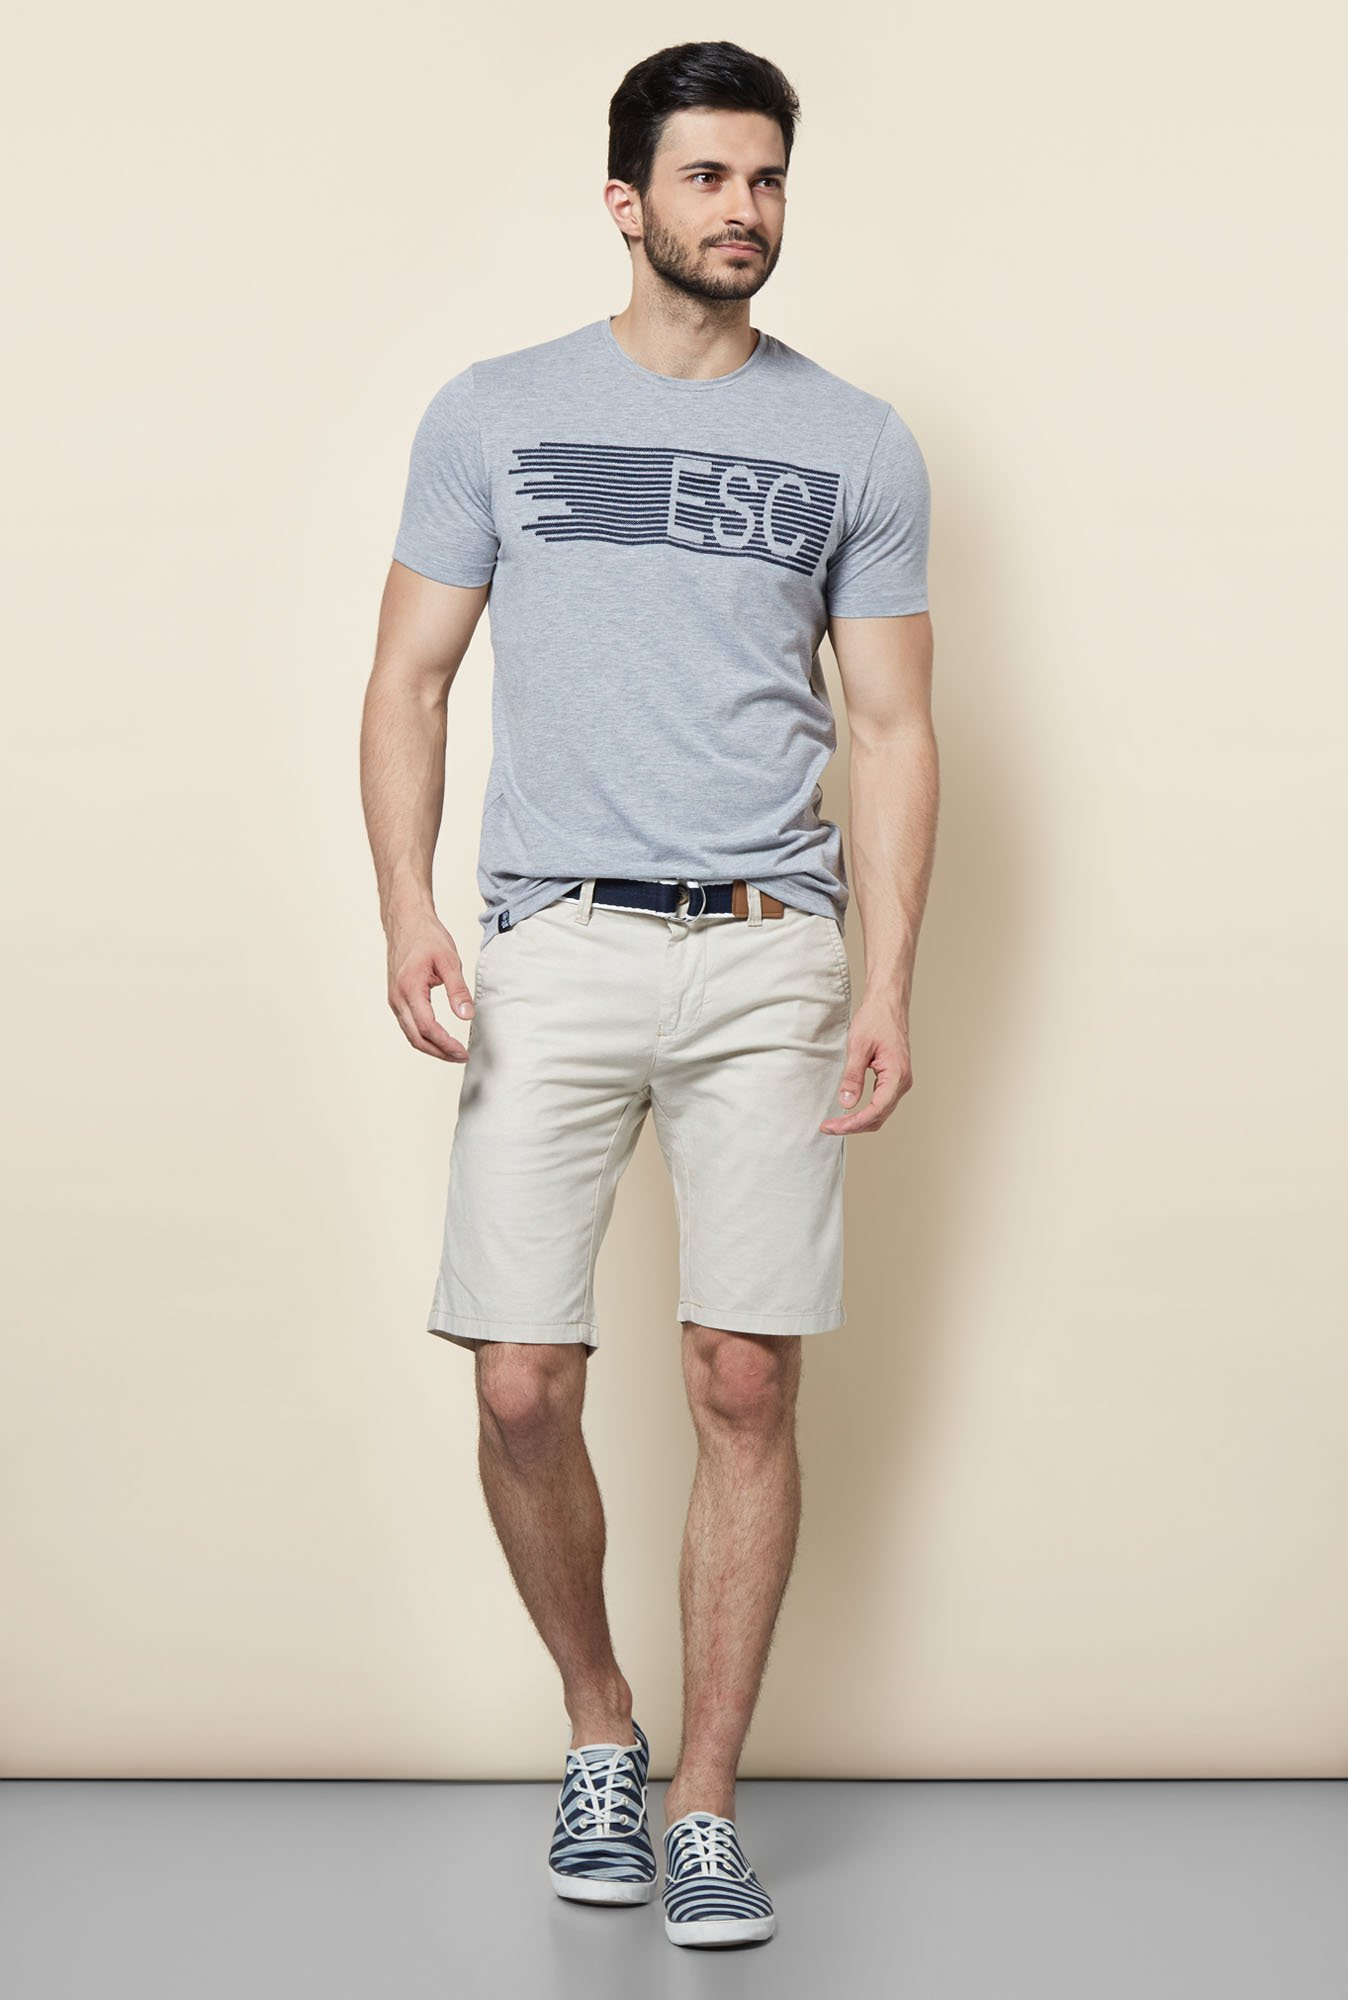 Easies Grey Casual T-Shirt